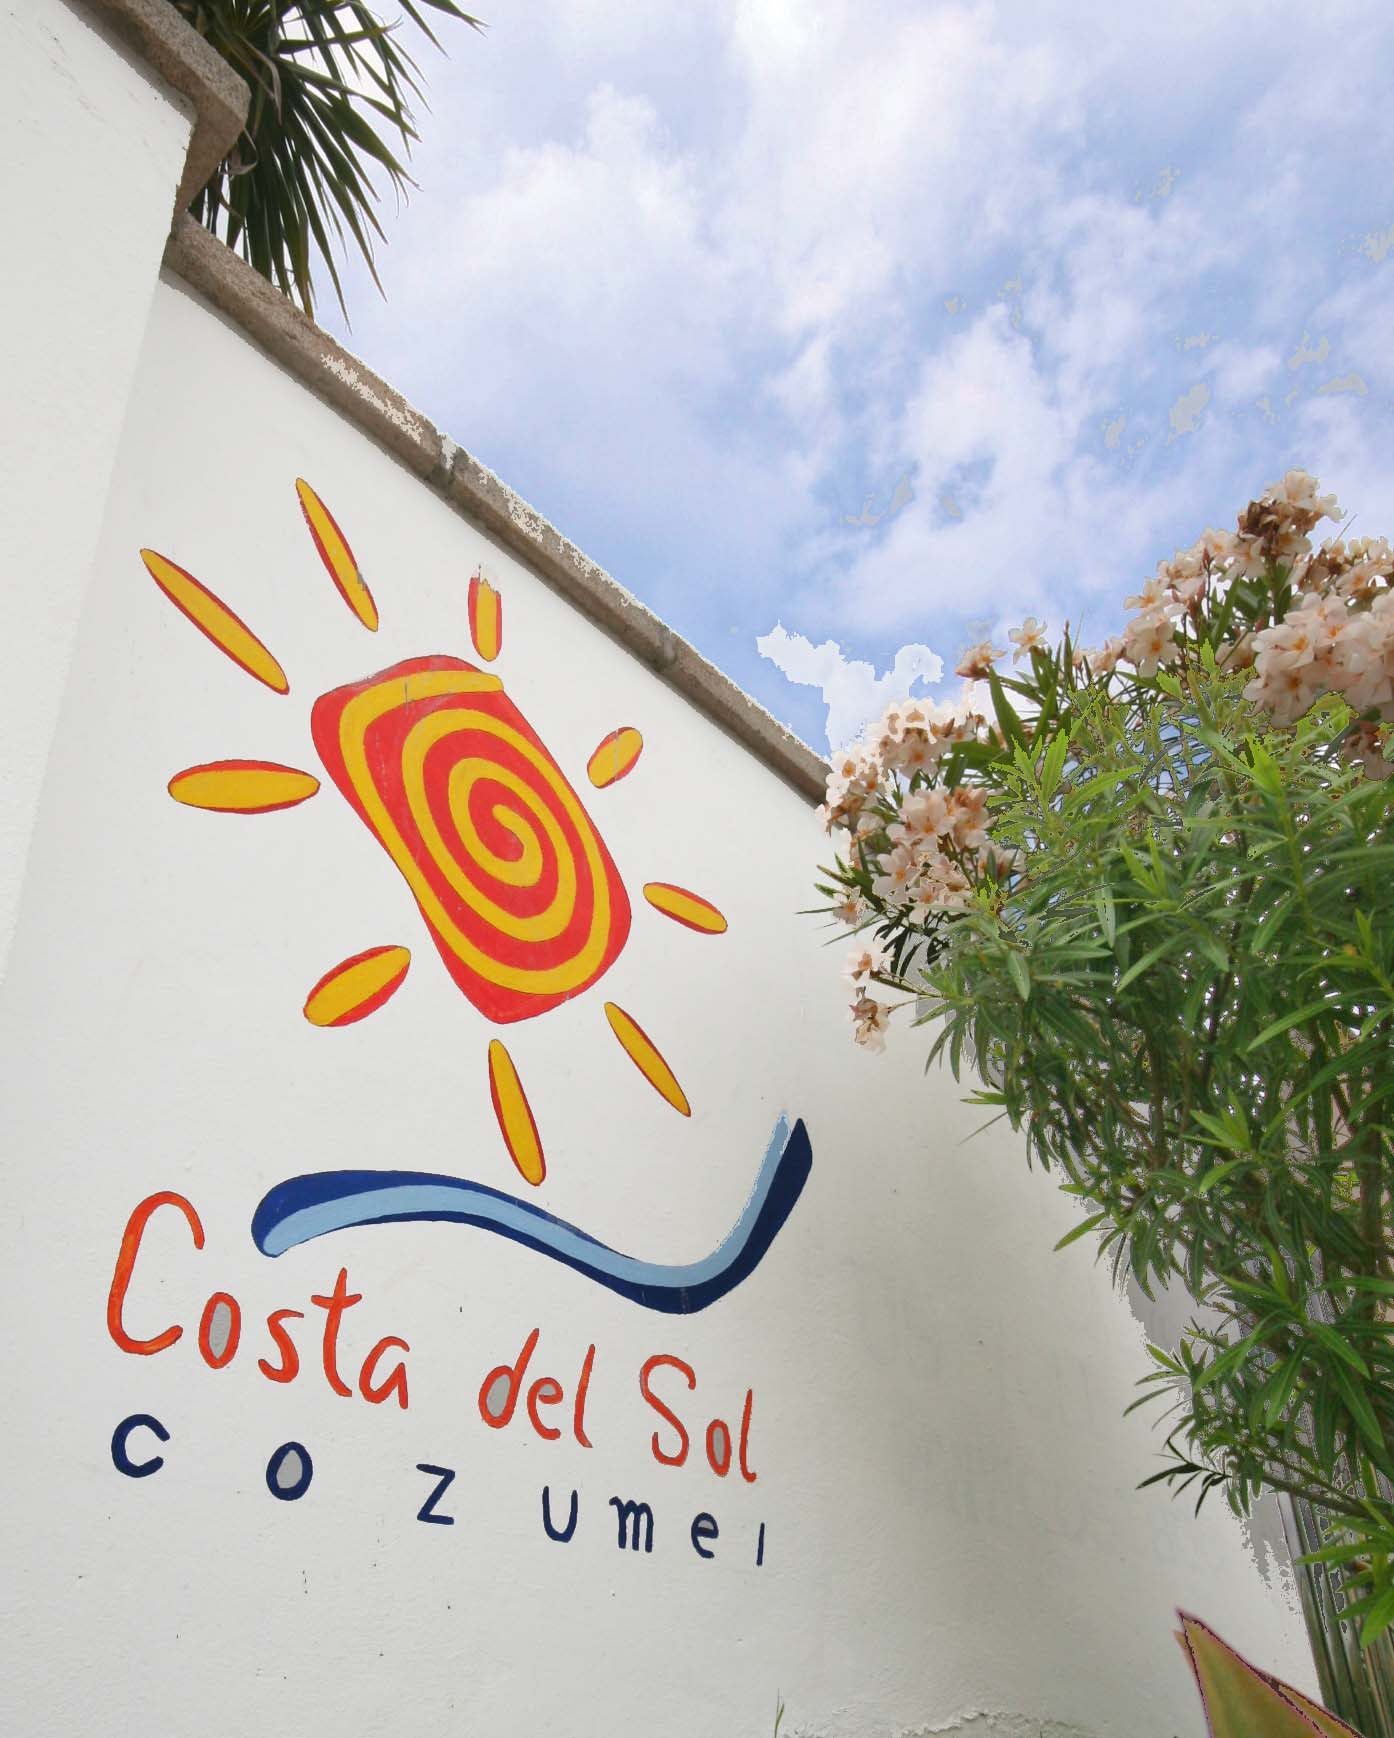 Costa del Sol on Cozumel